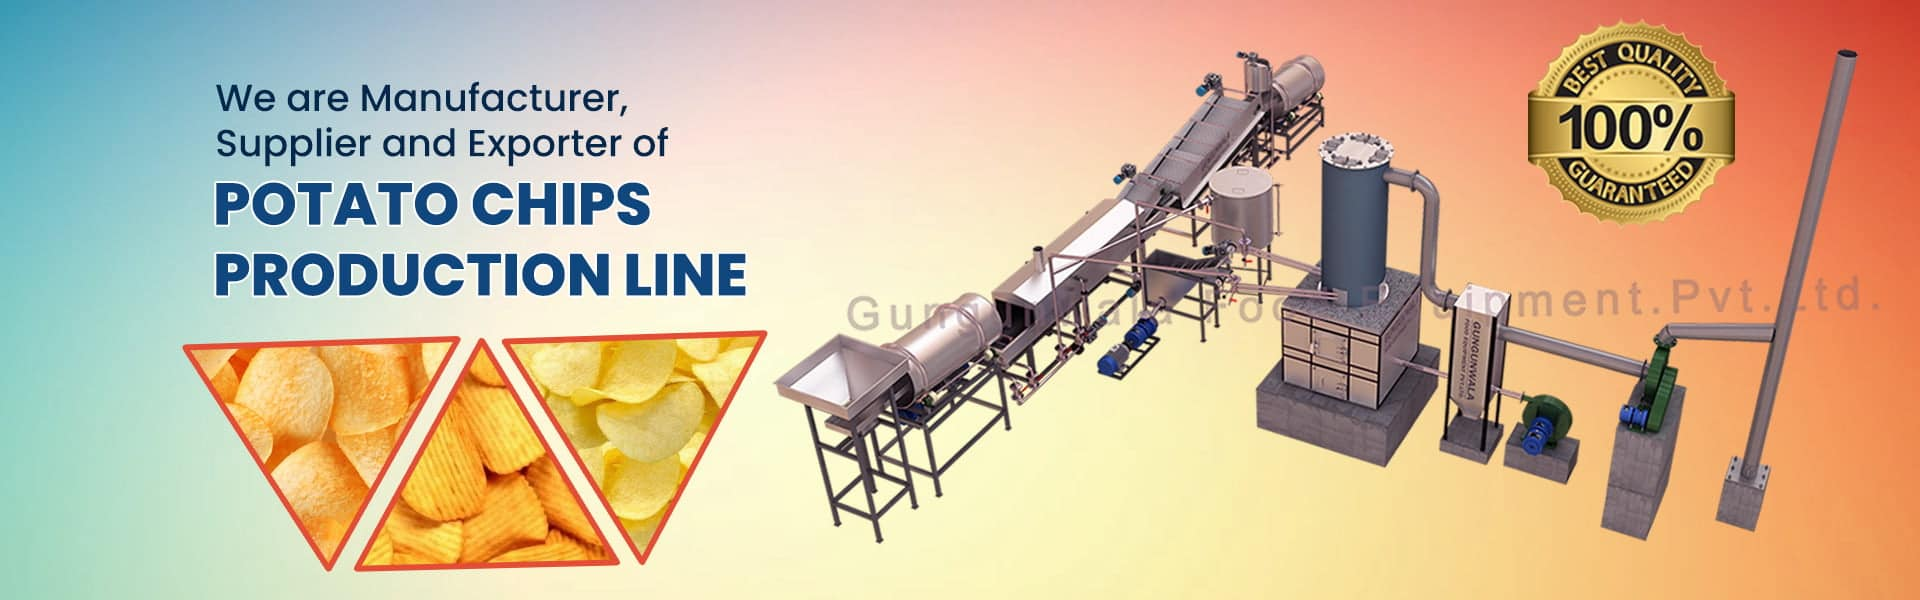 Potato Chips Production Line Manufacturer, Supplier & Exporter in Ahmedabad, Gujarat, India